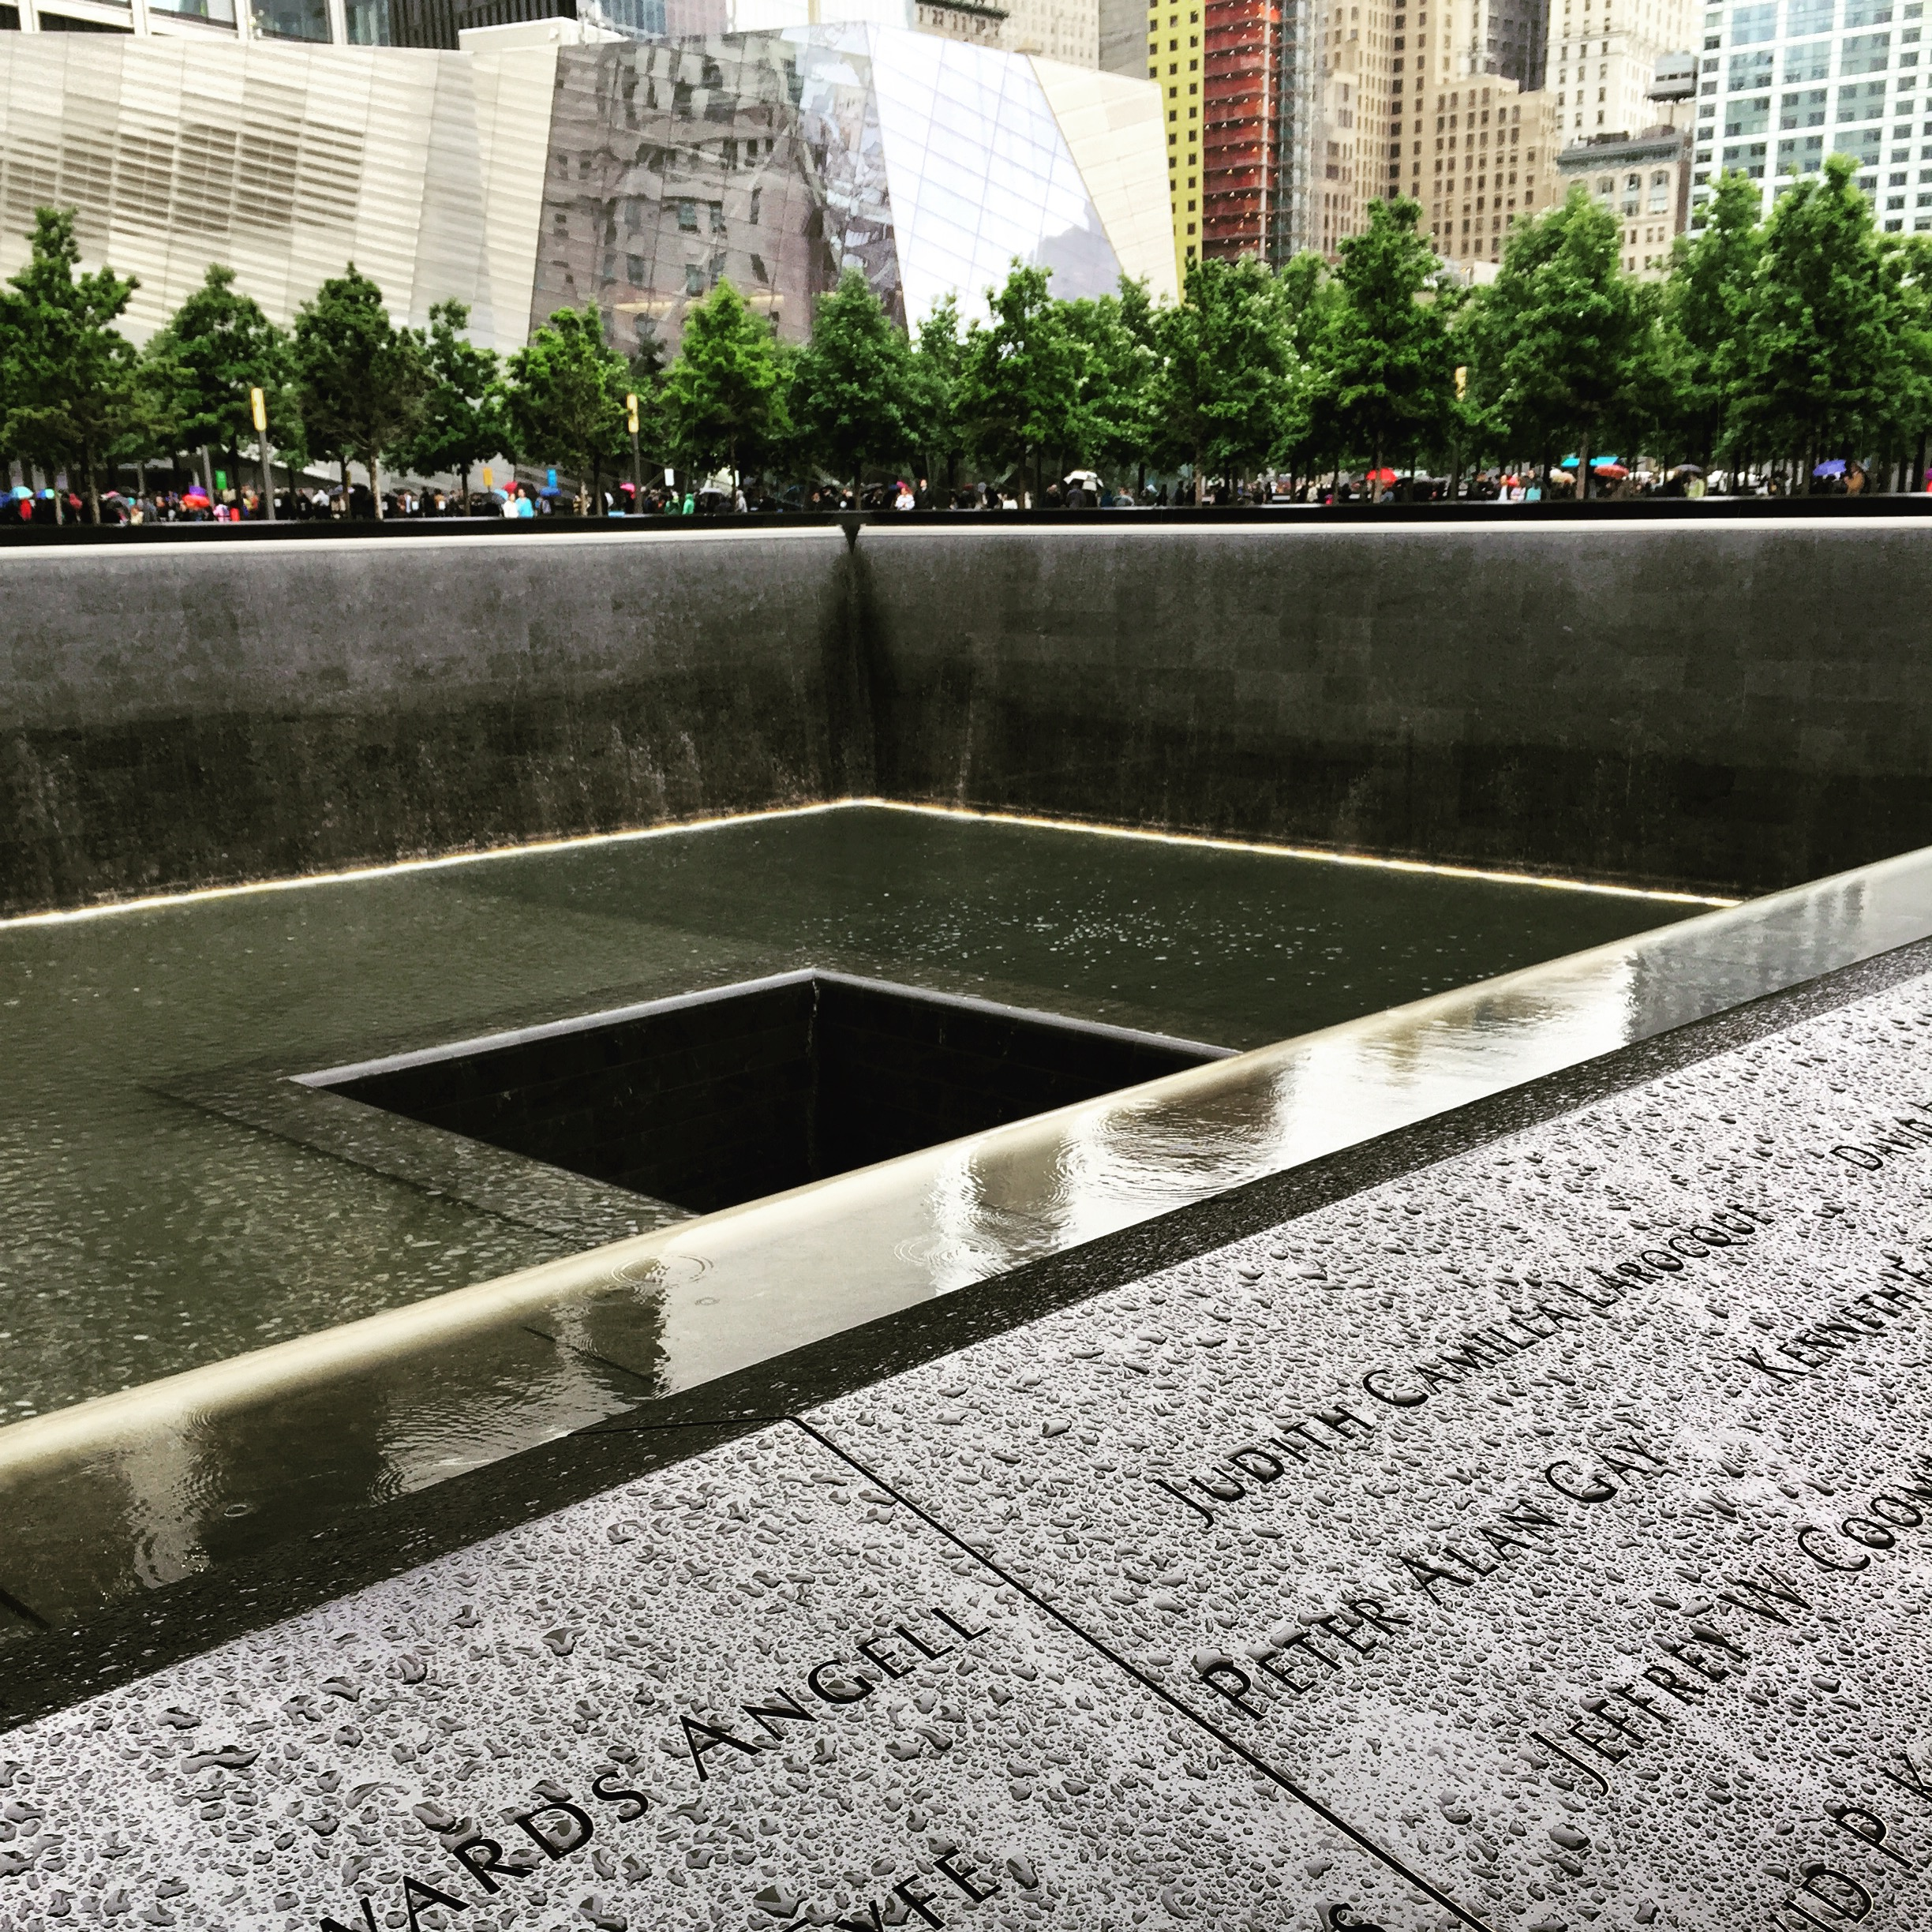 The 9/11 Memorial Museum is a very provocative memorial and continues to generate controversy and discussion.